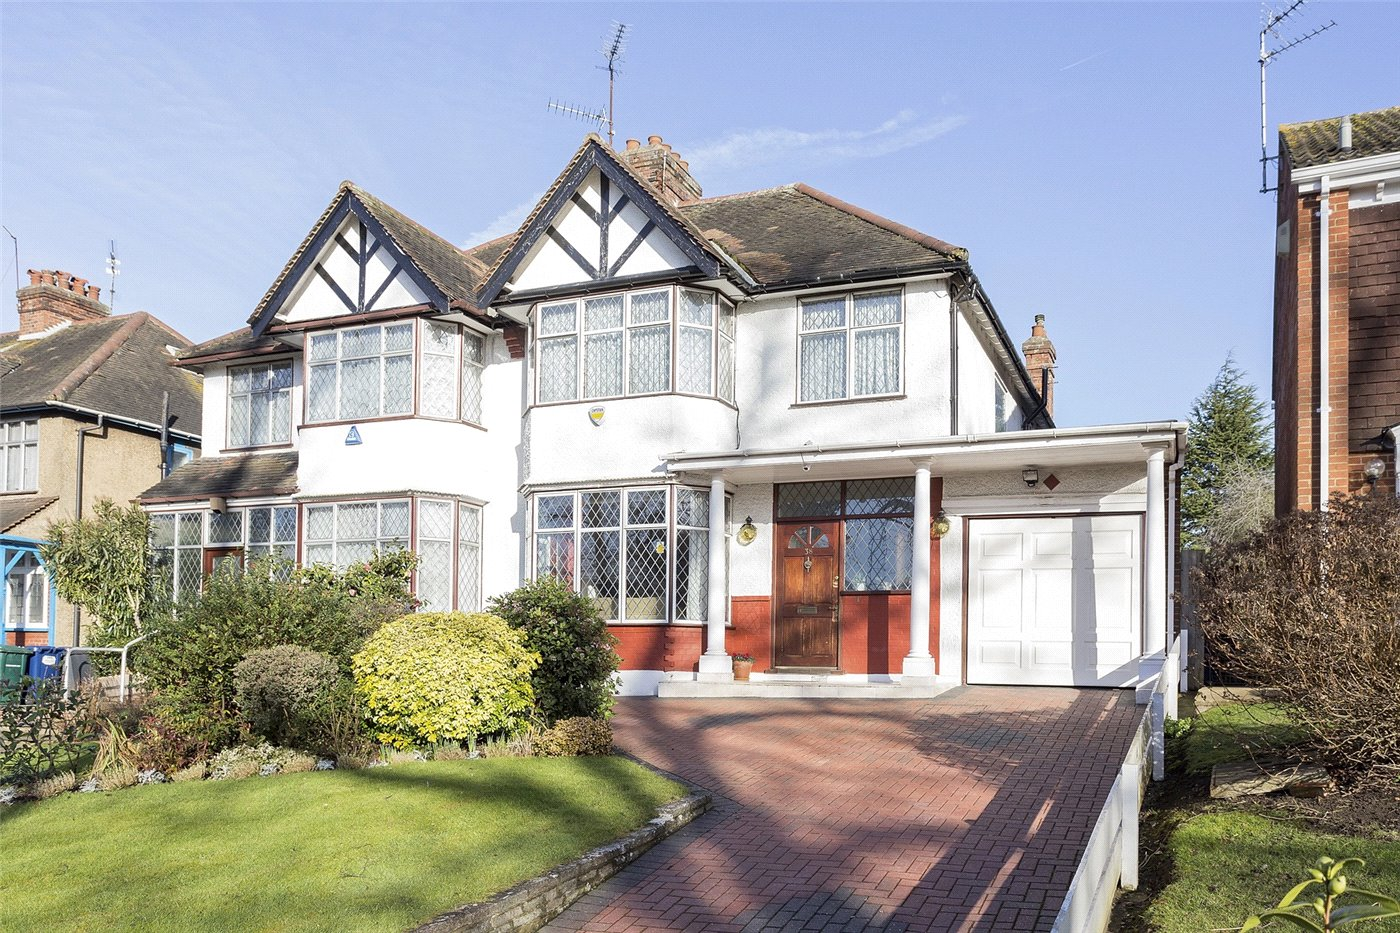 4 Bedrooms Semi Detached House for sale in Moss Hall Grove, Finchley, London, N12